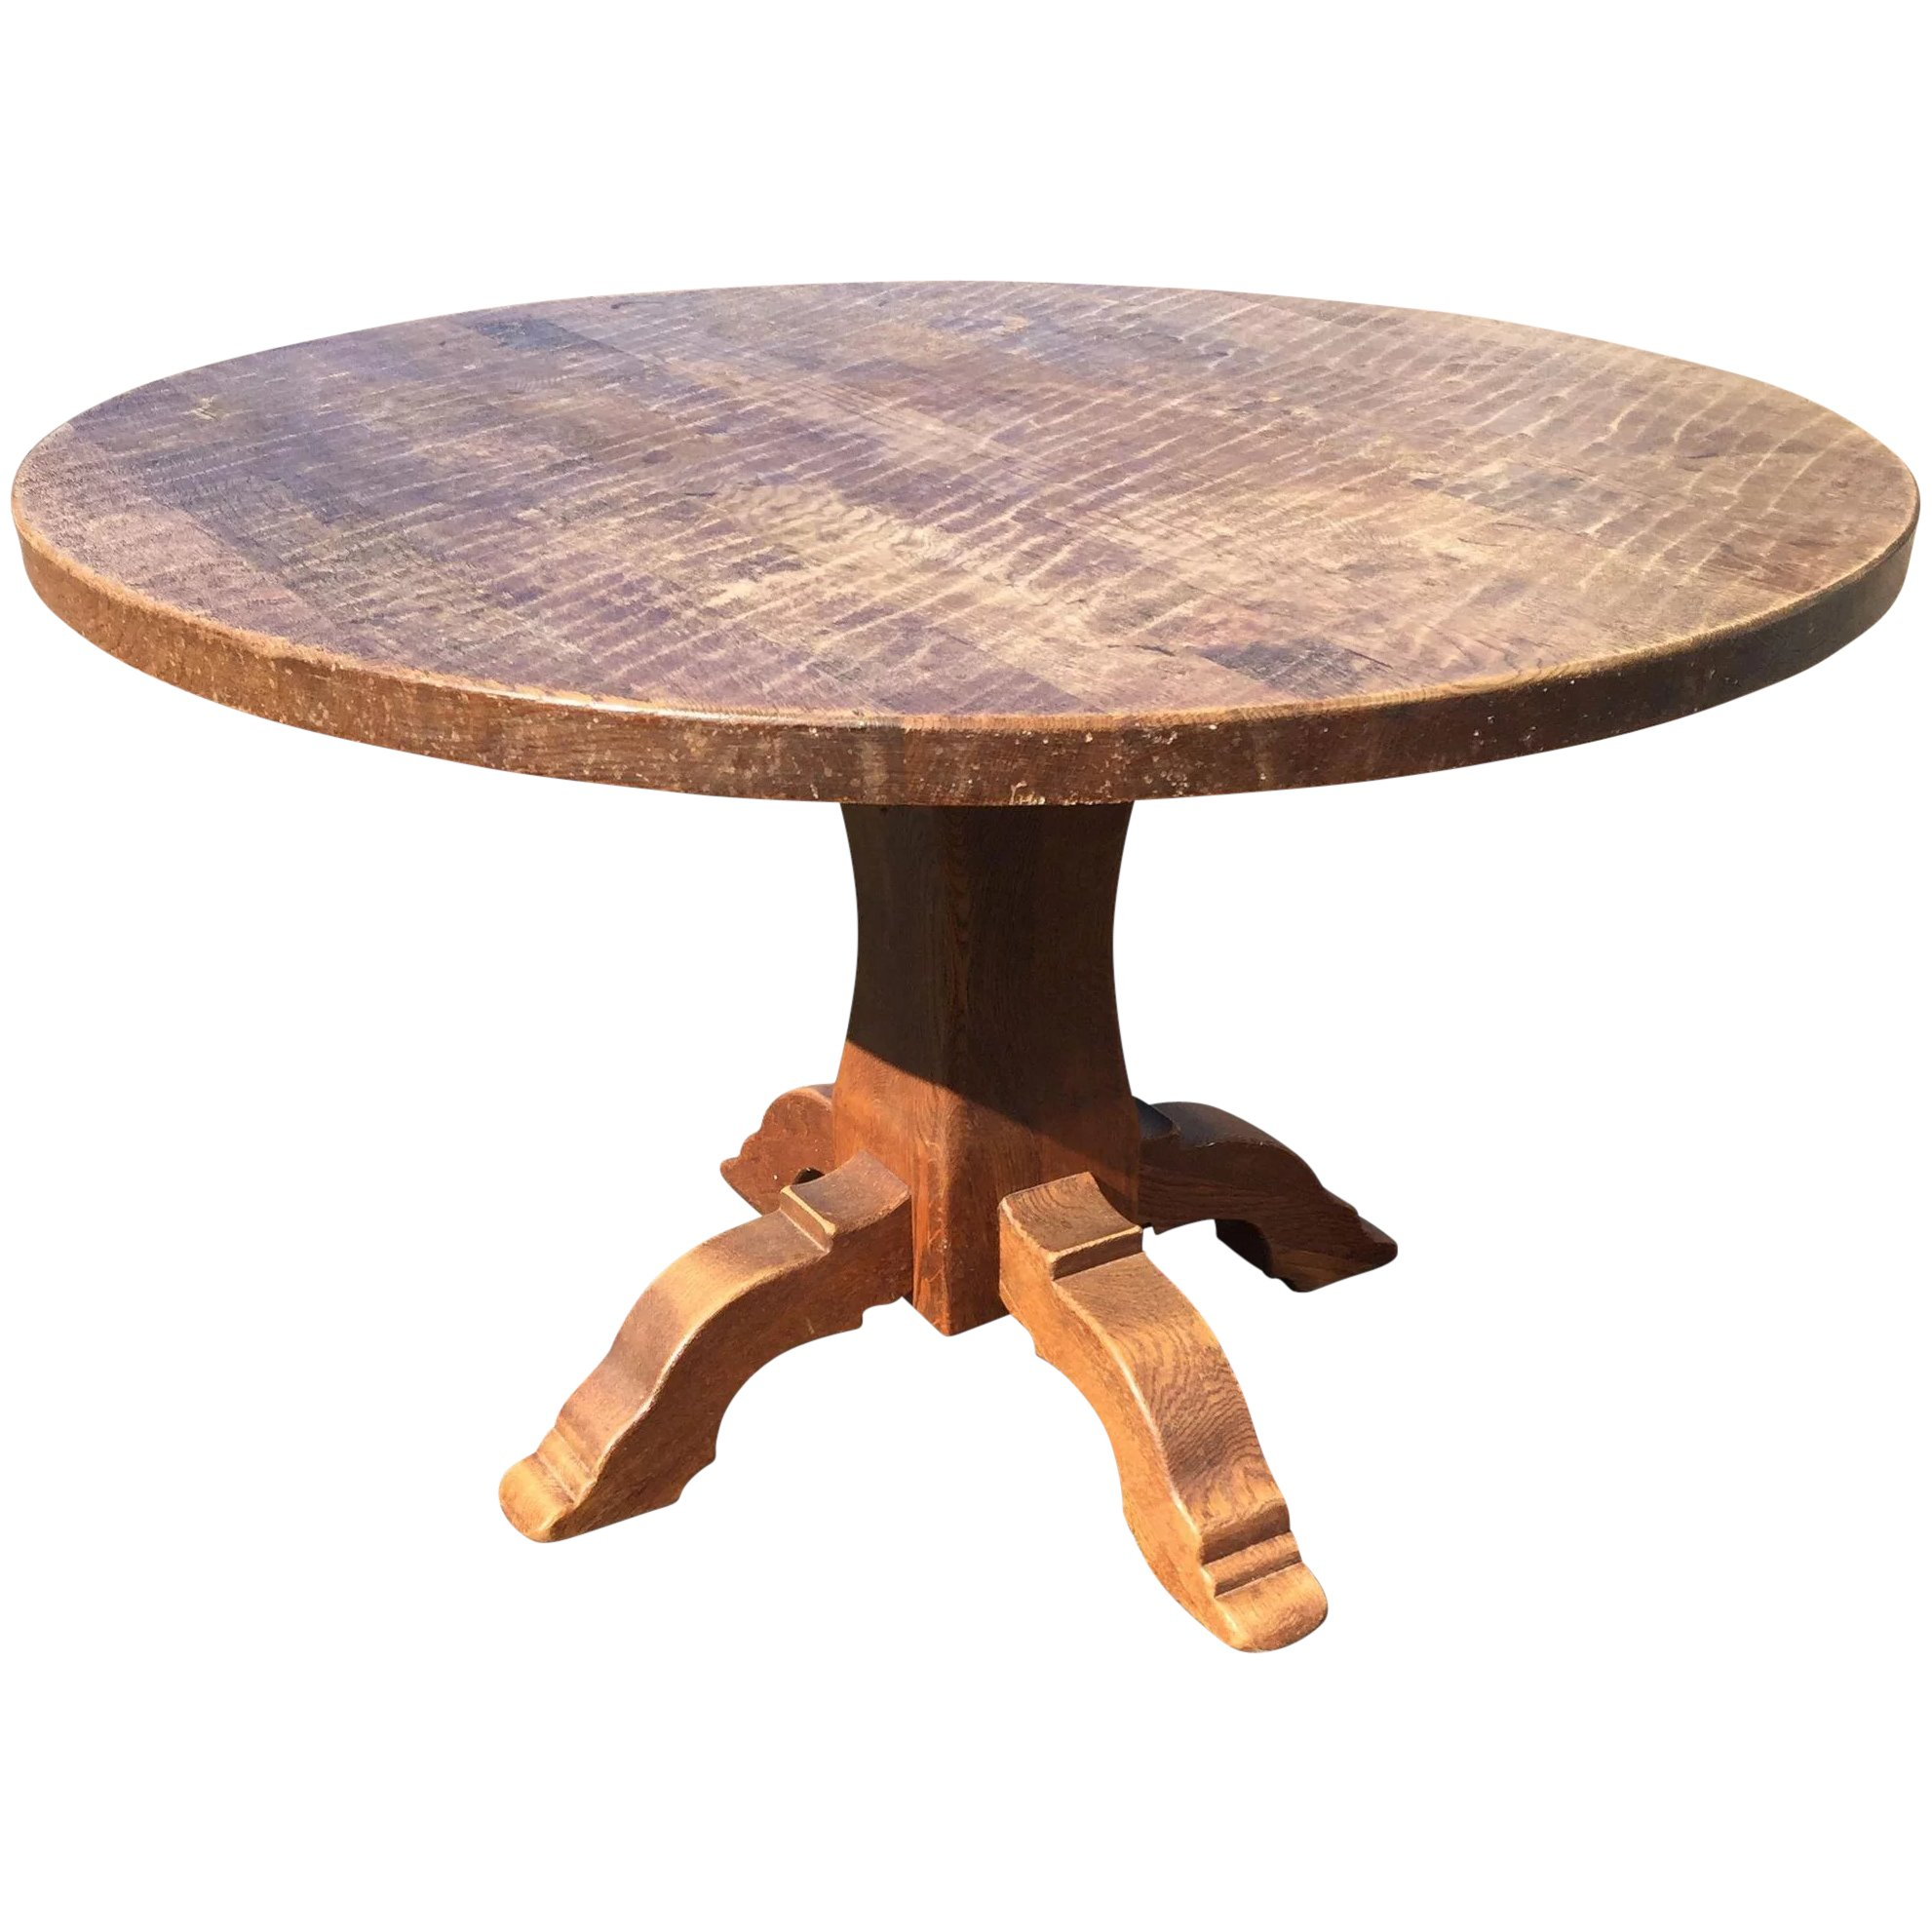 Vintage French Rustic Oak Wood Round Table Europe Antiques Collectibles And Decorations Shop